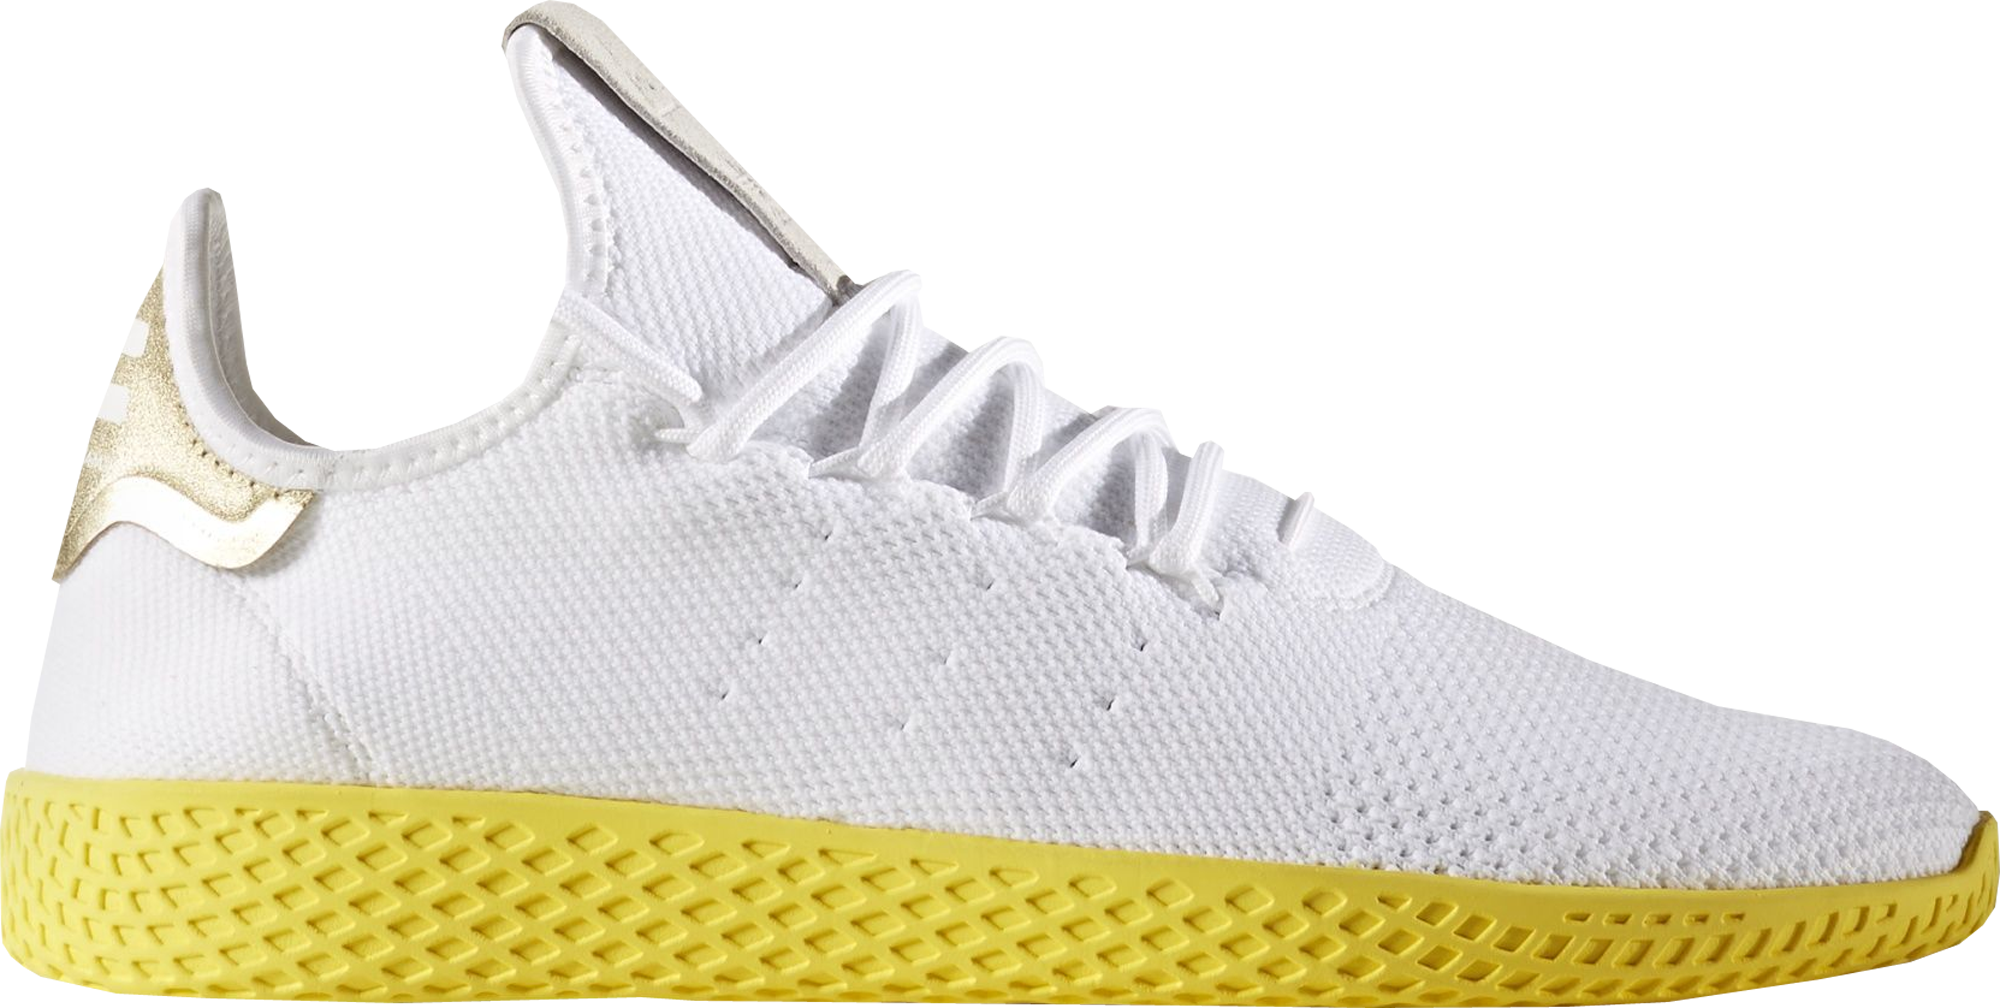 adidas Tennis HU Pharrell White Yellow